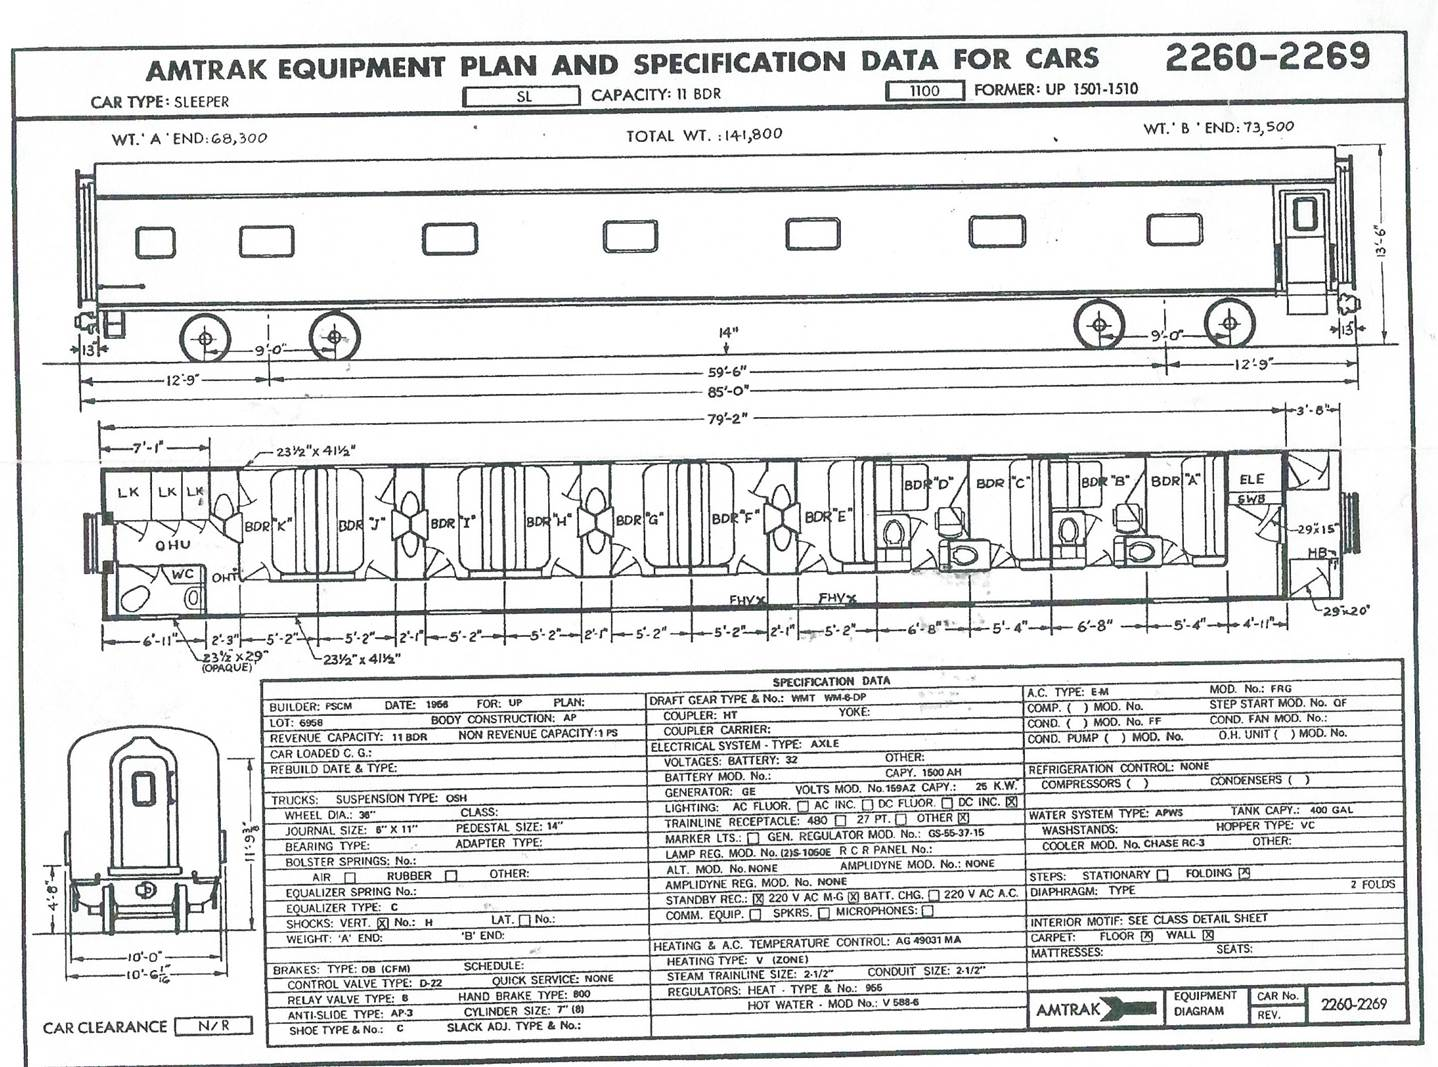 Train car diagram